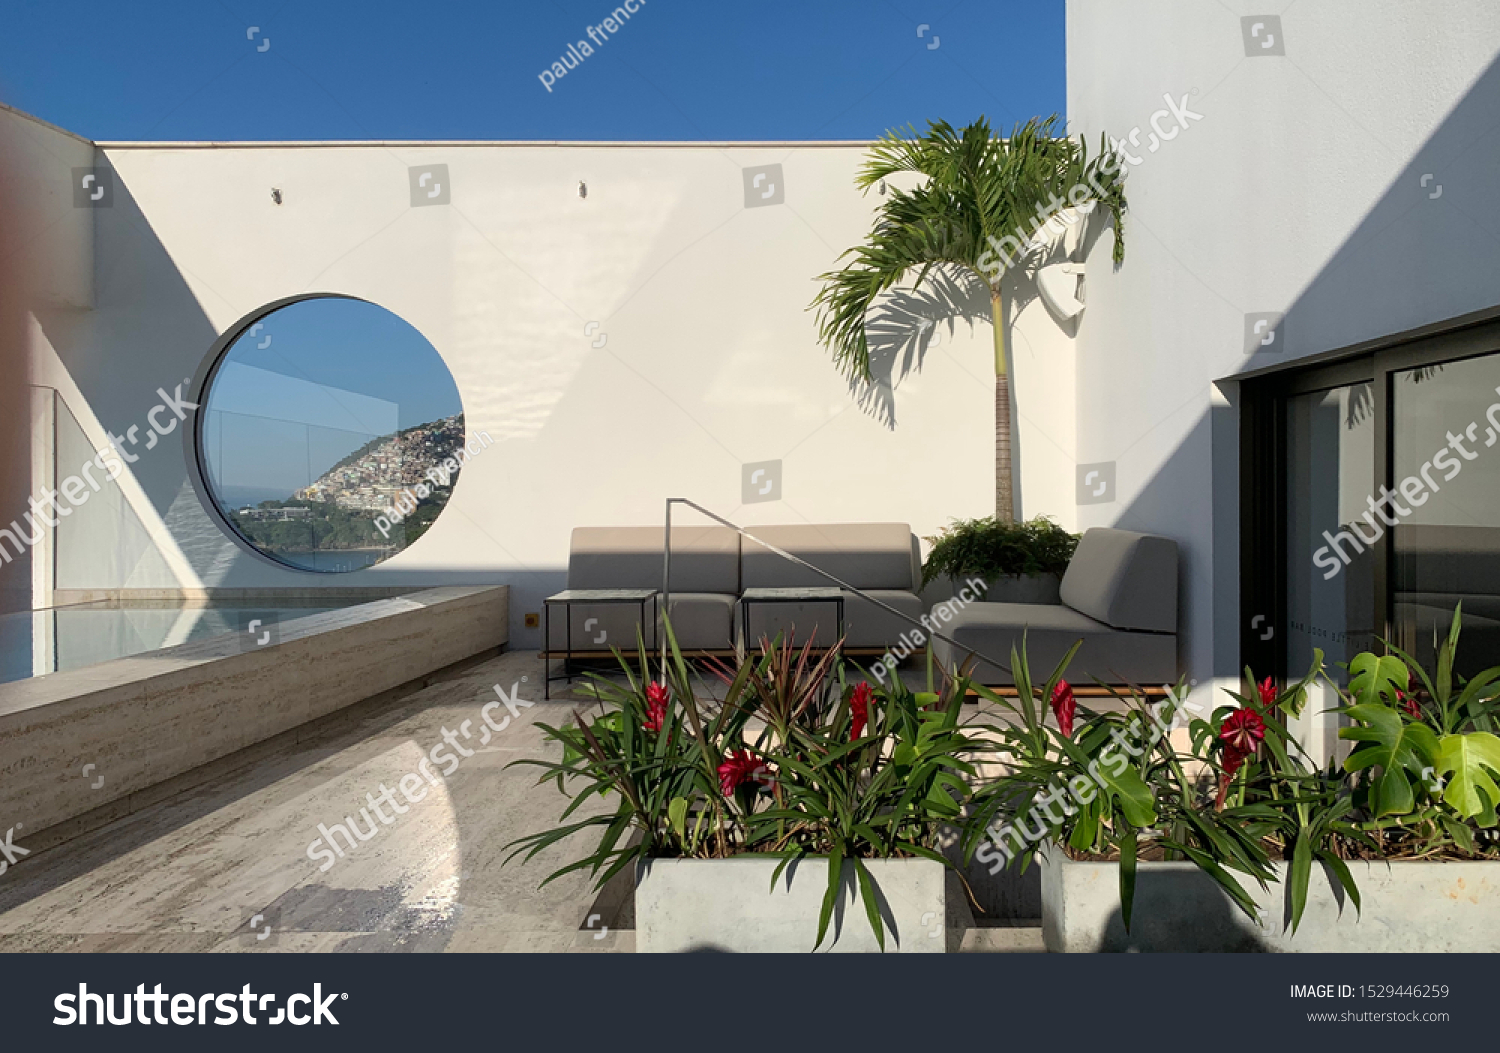 Janeiro Hotel, Rio, Brazil 2019 roof top terrace with infinity pool and view.. it is a luxury boutique hotel used by affluent travellers and is popular with a younger clientele.